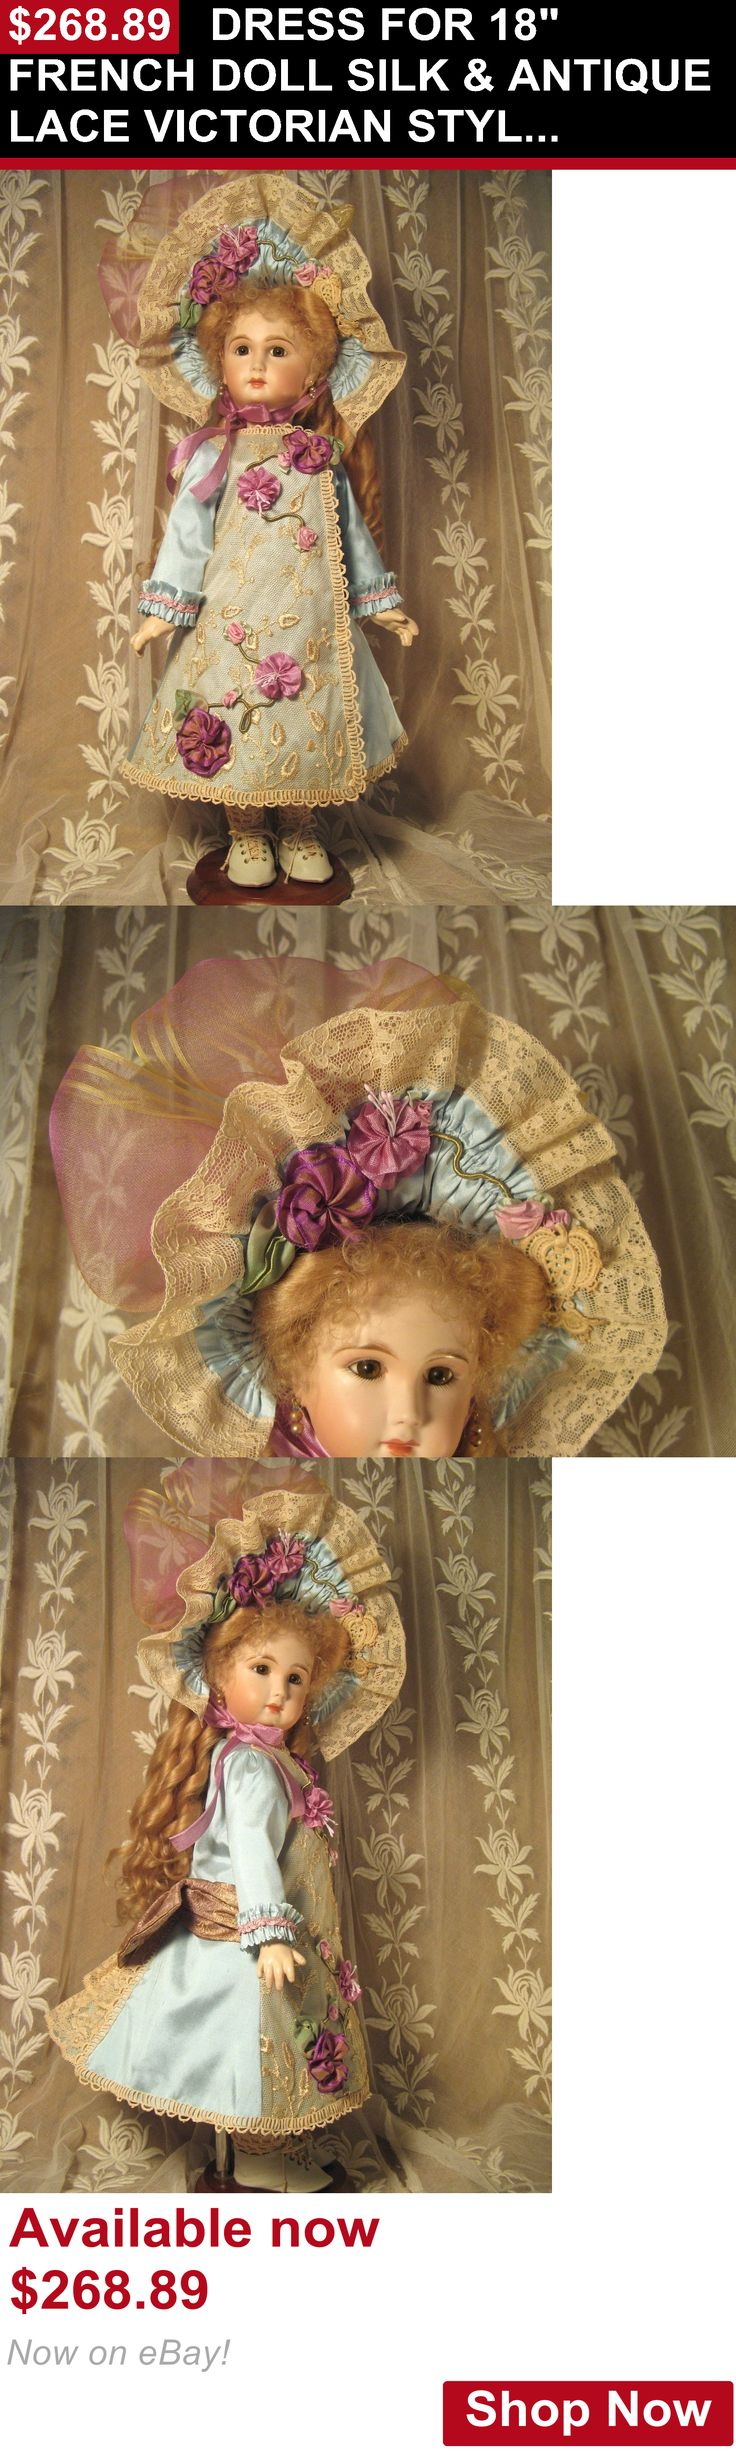 Telescope Cases And Bags: Dress For 18 French Doll Silk And Antique Lace Victorian Style Lt Aqua And Purples BUY IT NOW ONLY: $268.89